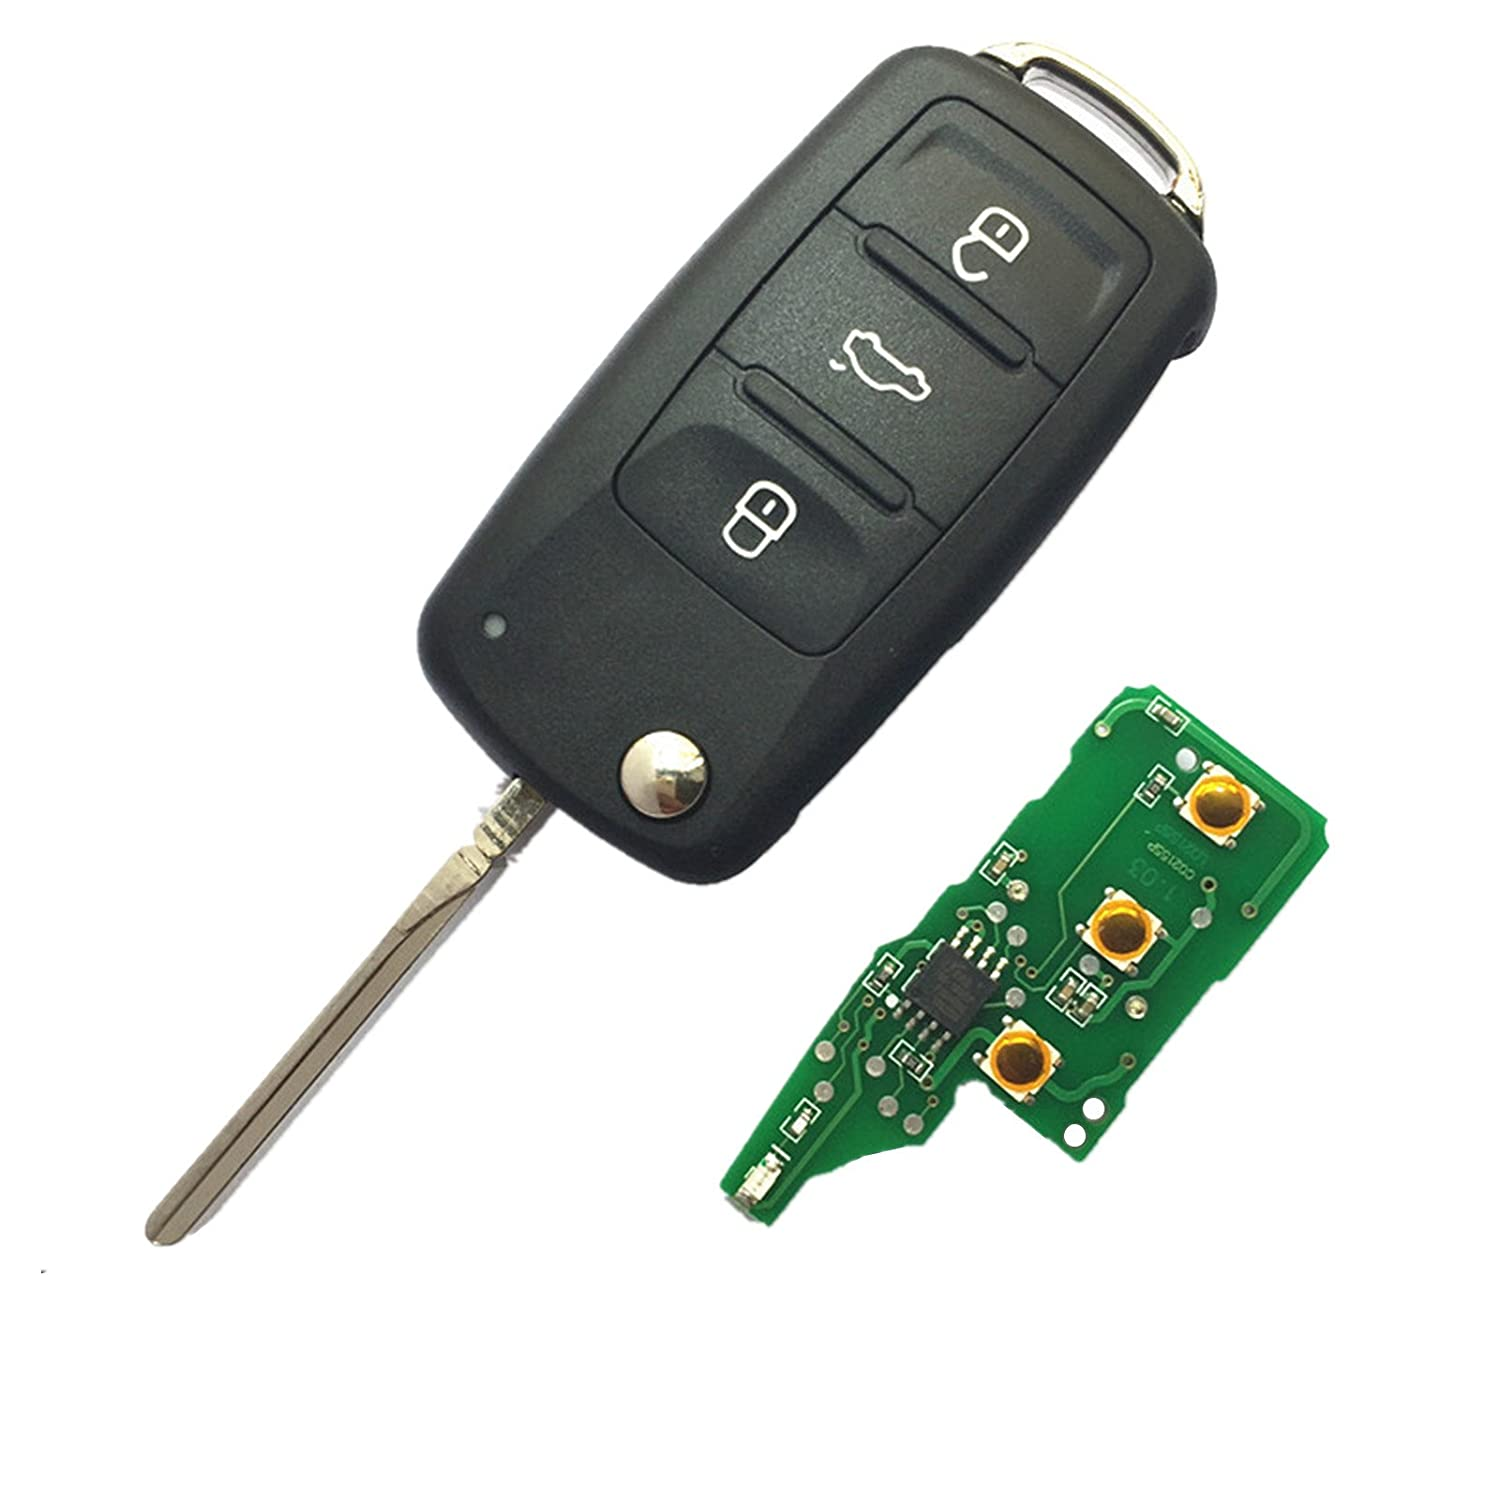 Dudely 3 Buttons Flip Folding Remote Key Fob 433mhz Id48 Electronic Circuit Chip Vw 5k0837202ad Include Electronicchip 2 Pack Automotive